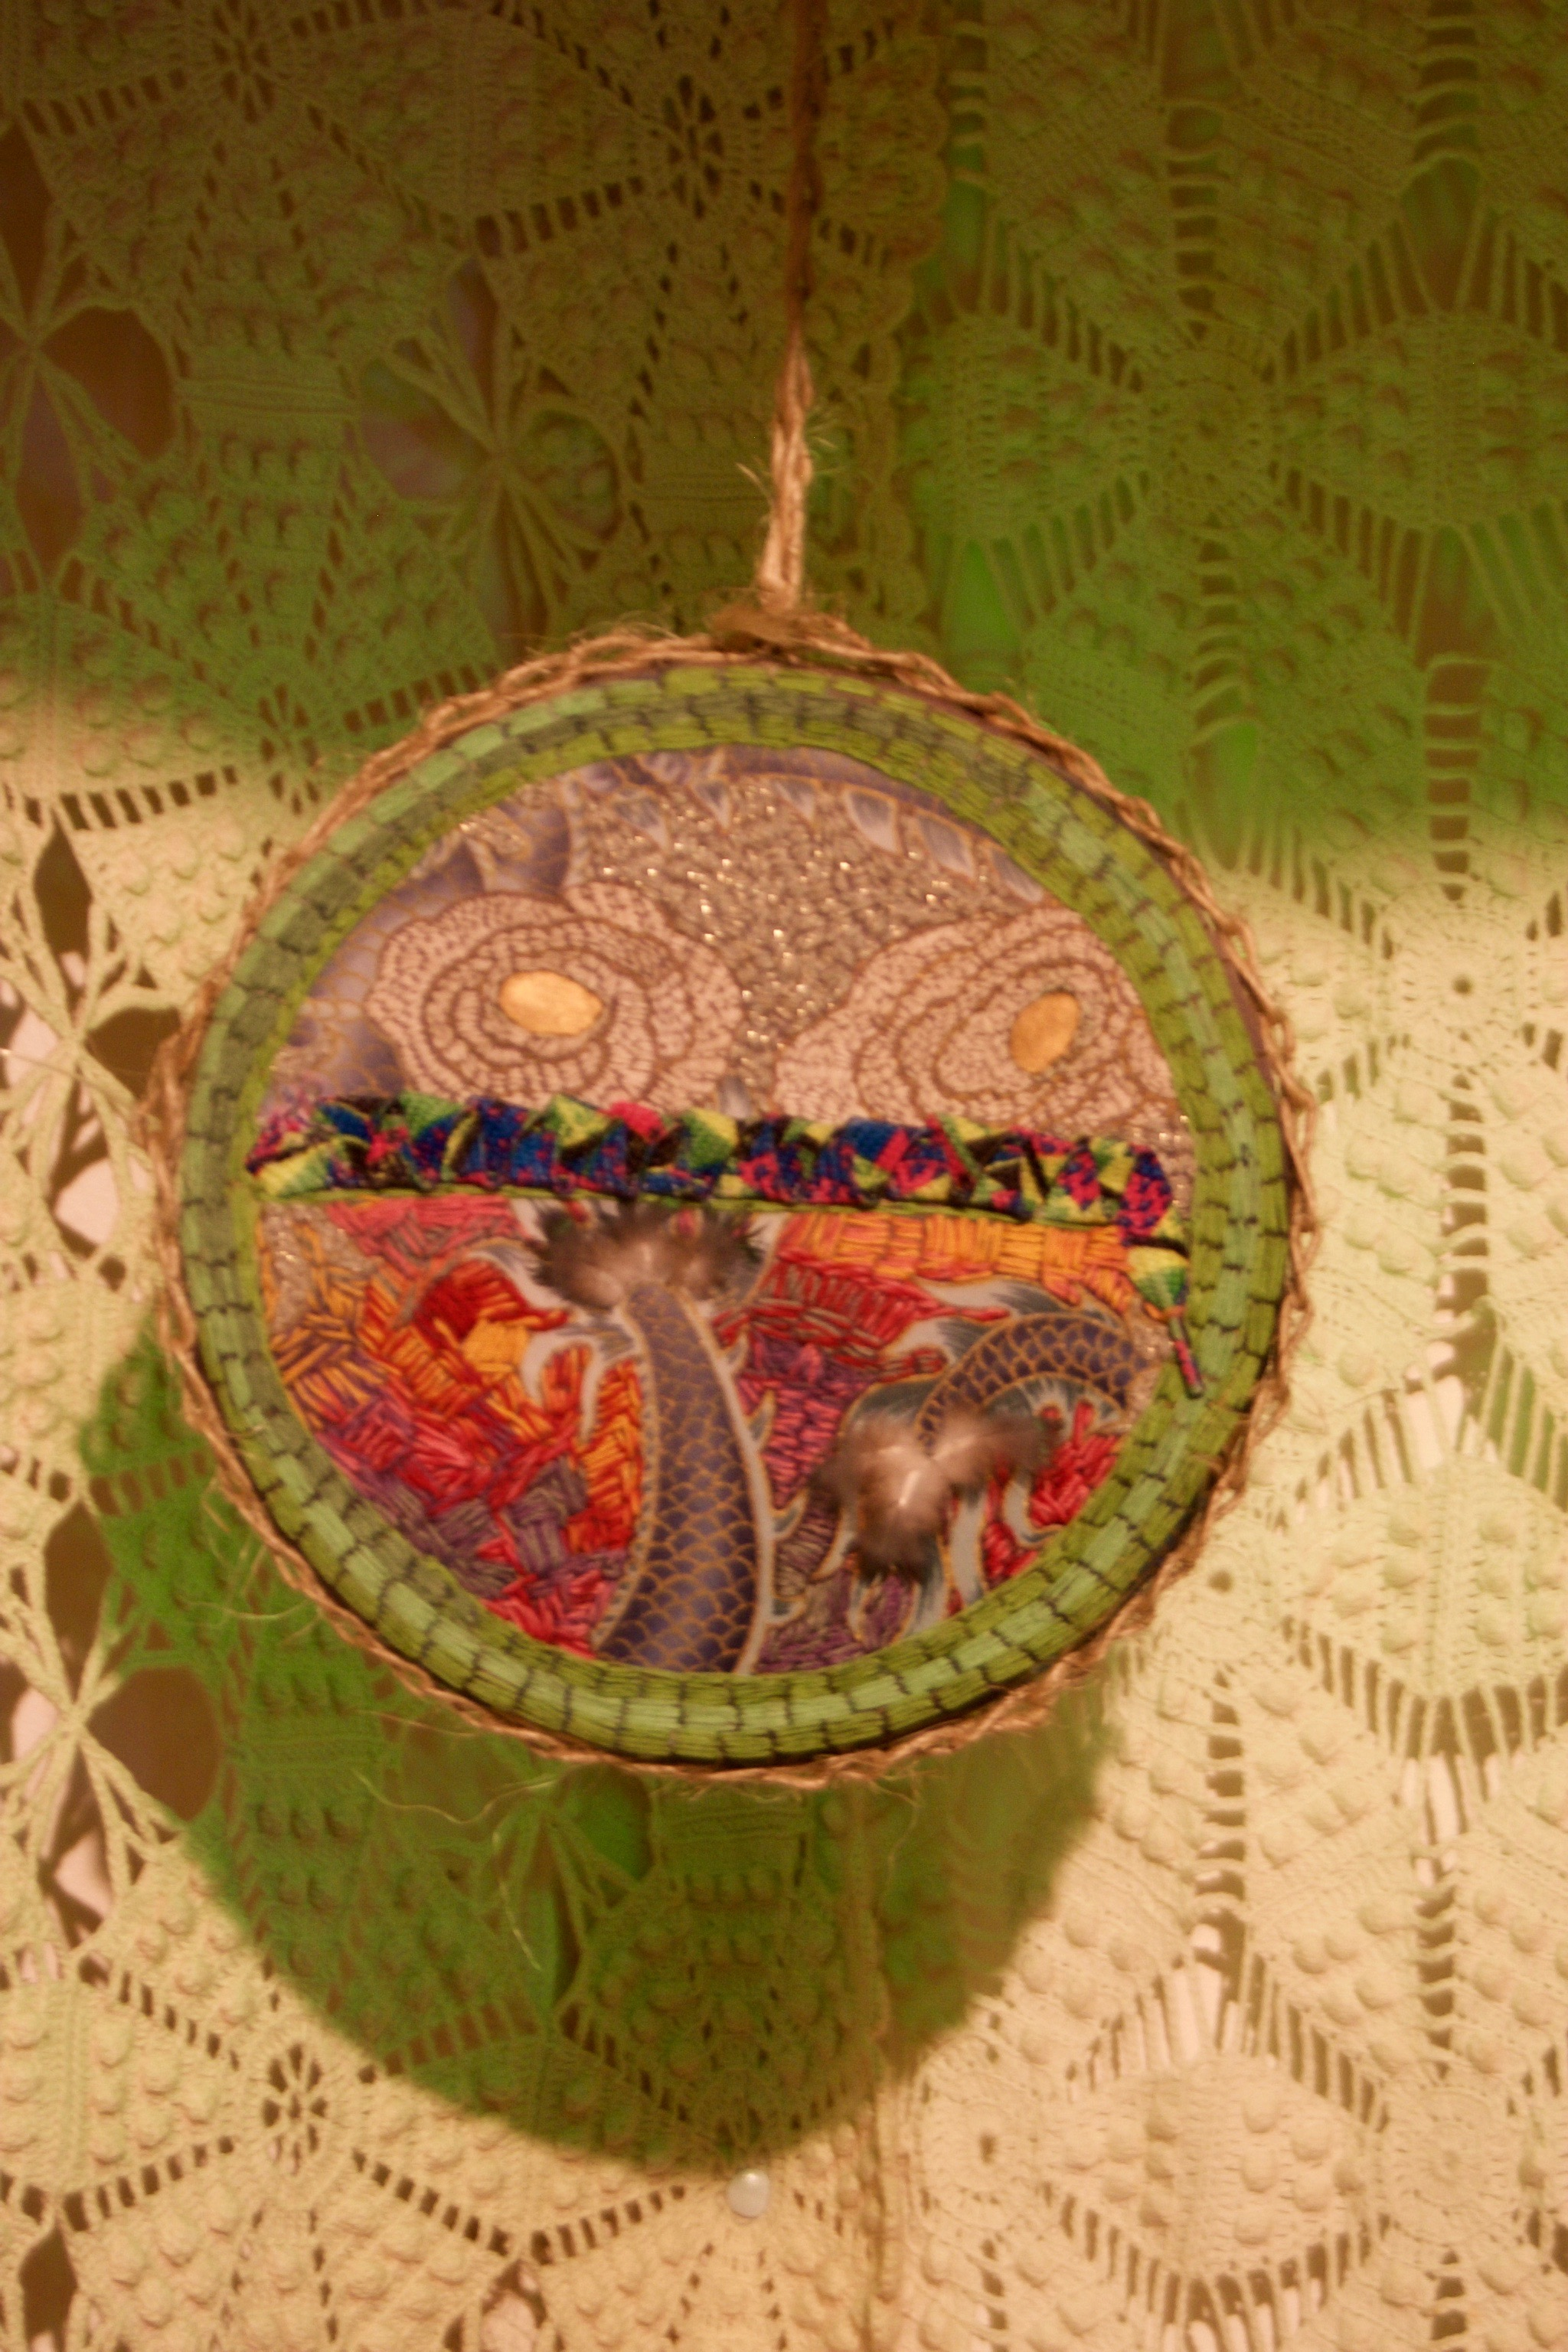 Equivalents , embroidery with feathers, shoelaces, and twine, 8 1/2 x 8 1/2 inches